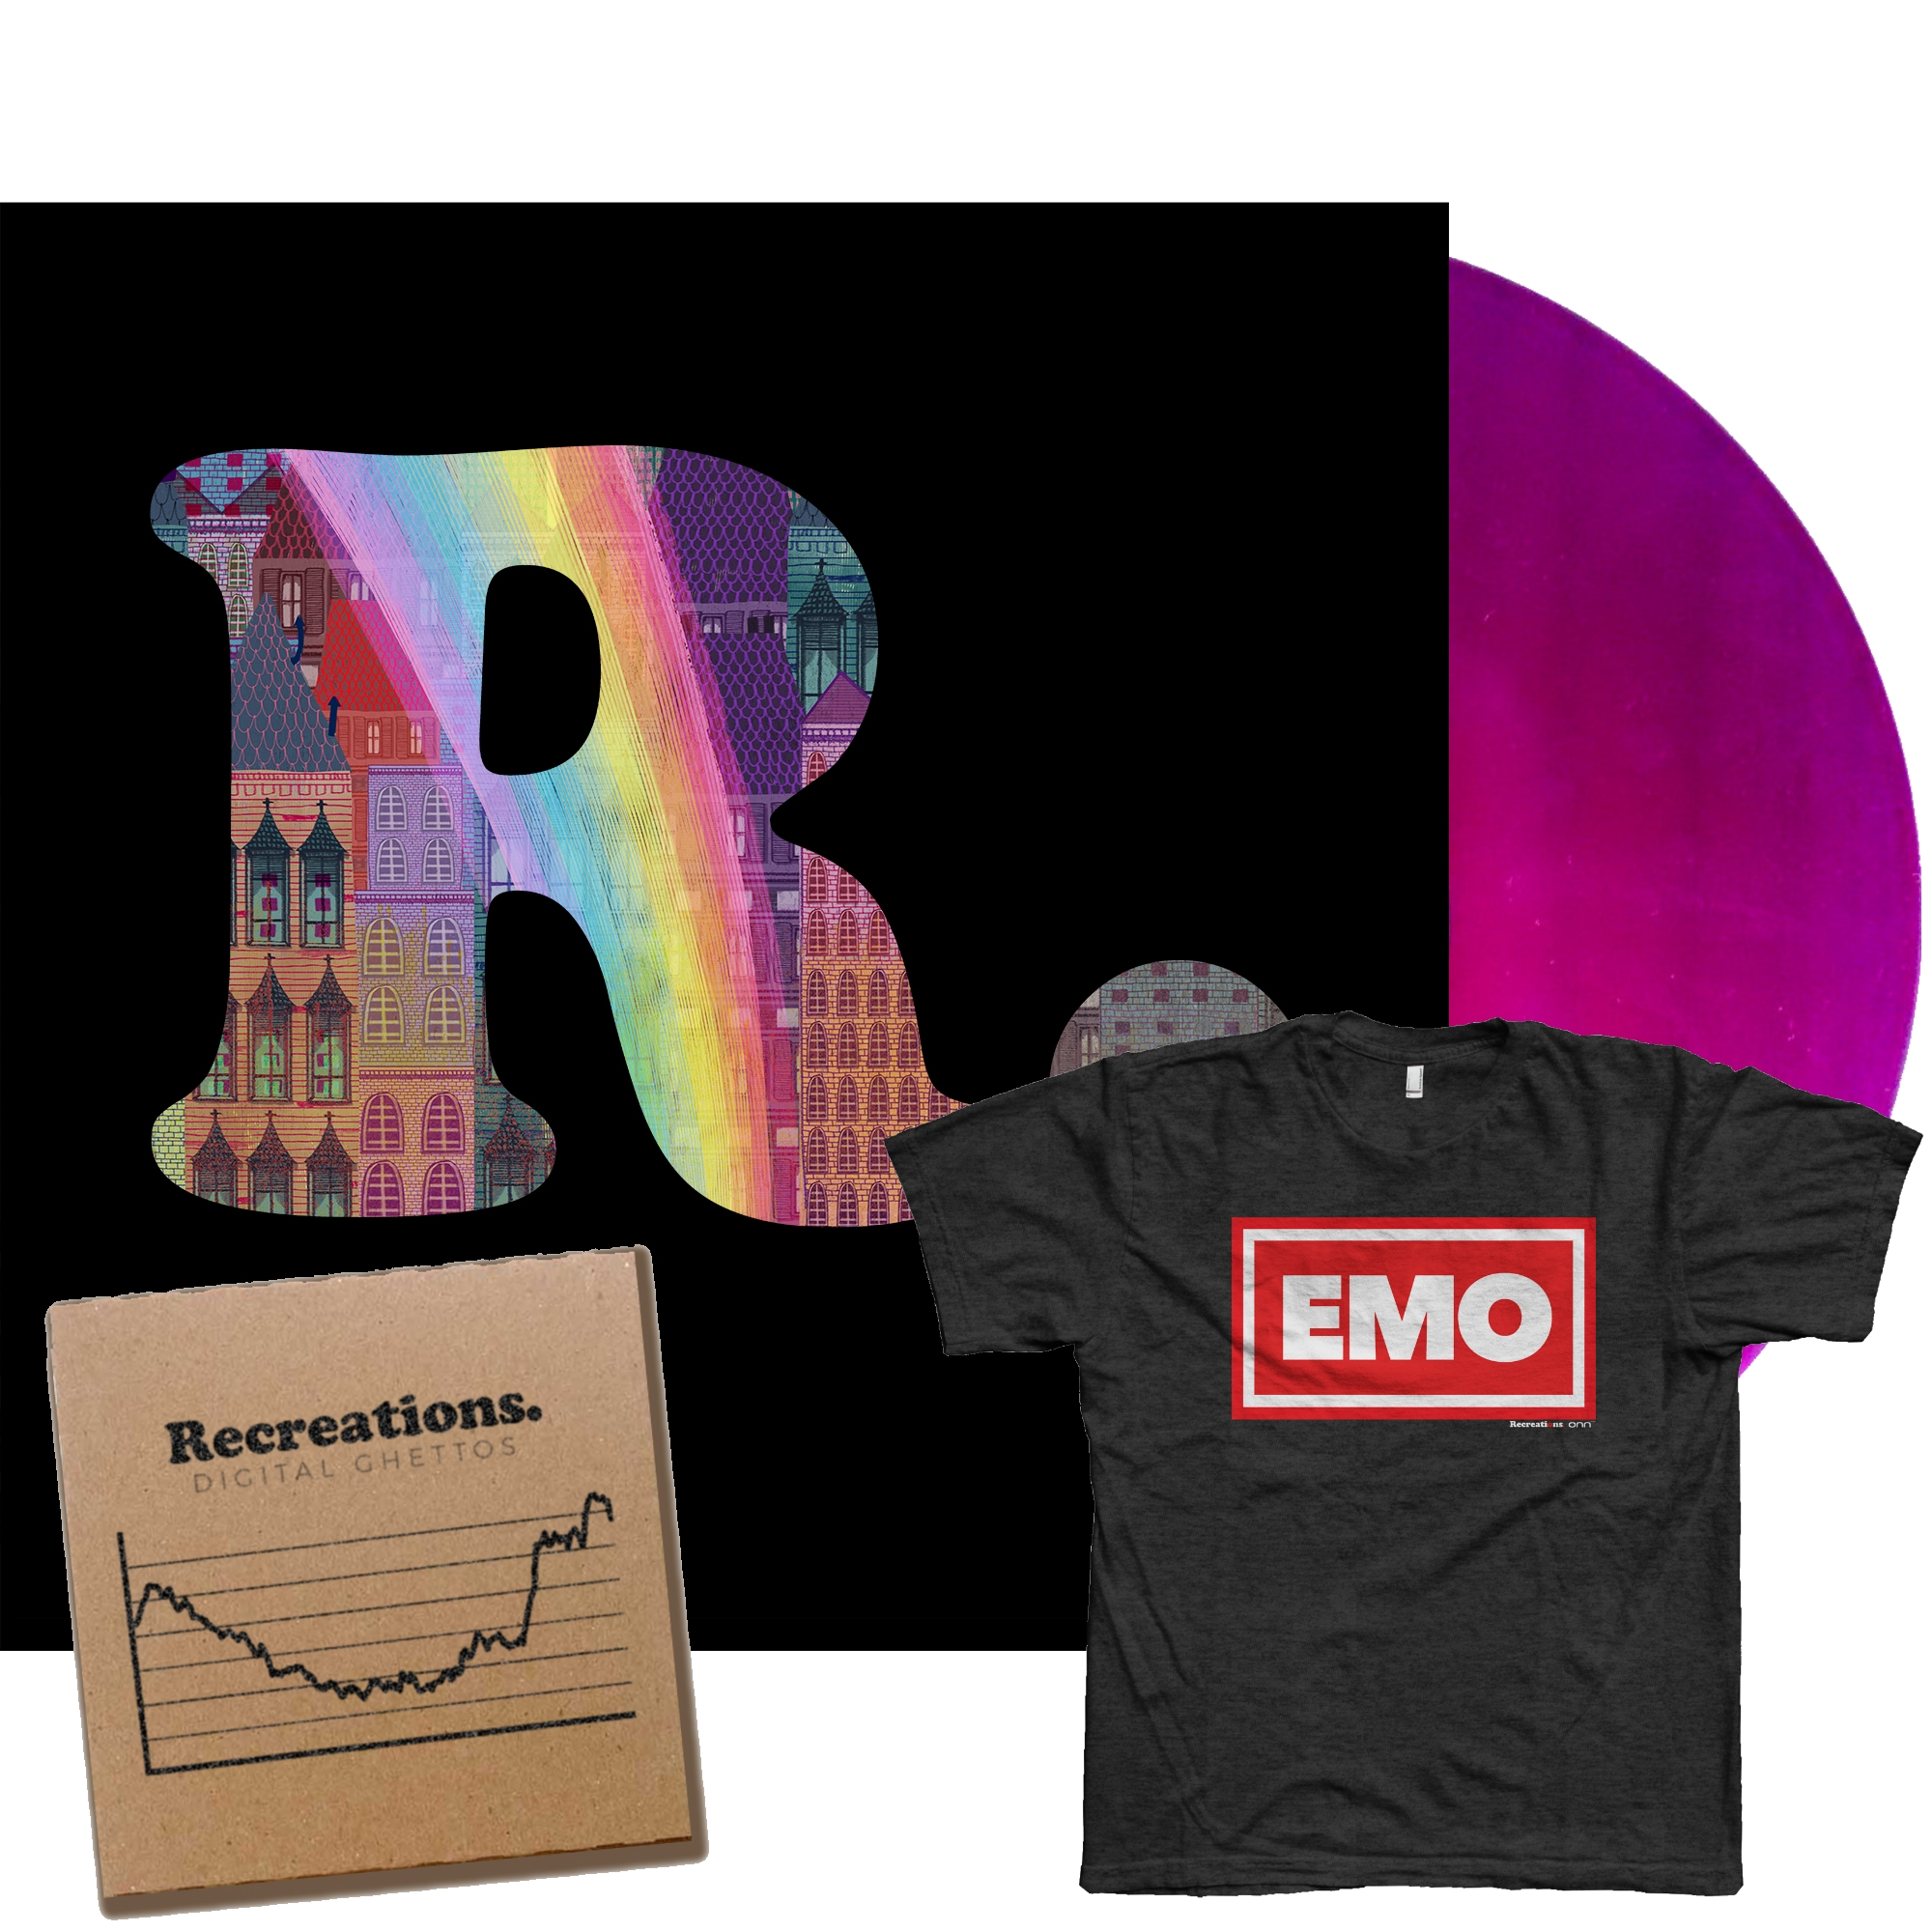 Recreations - Baby Boomers 2 LP [Signed] + Digital Ghettos CD [Signed] + T-Shirt [Preorder]